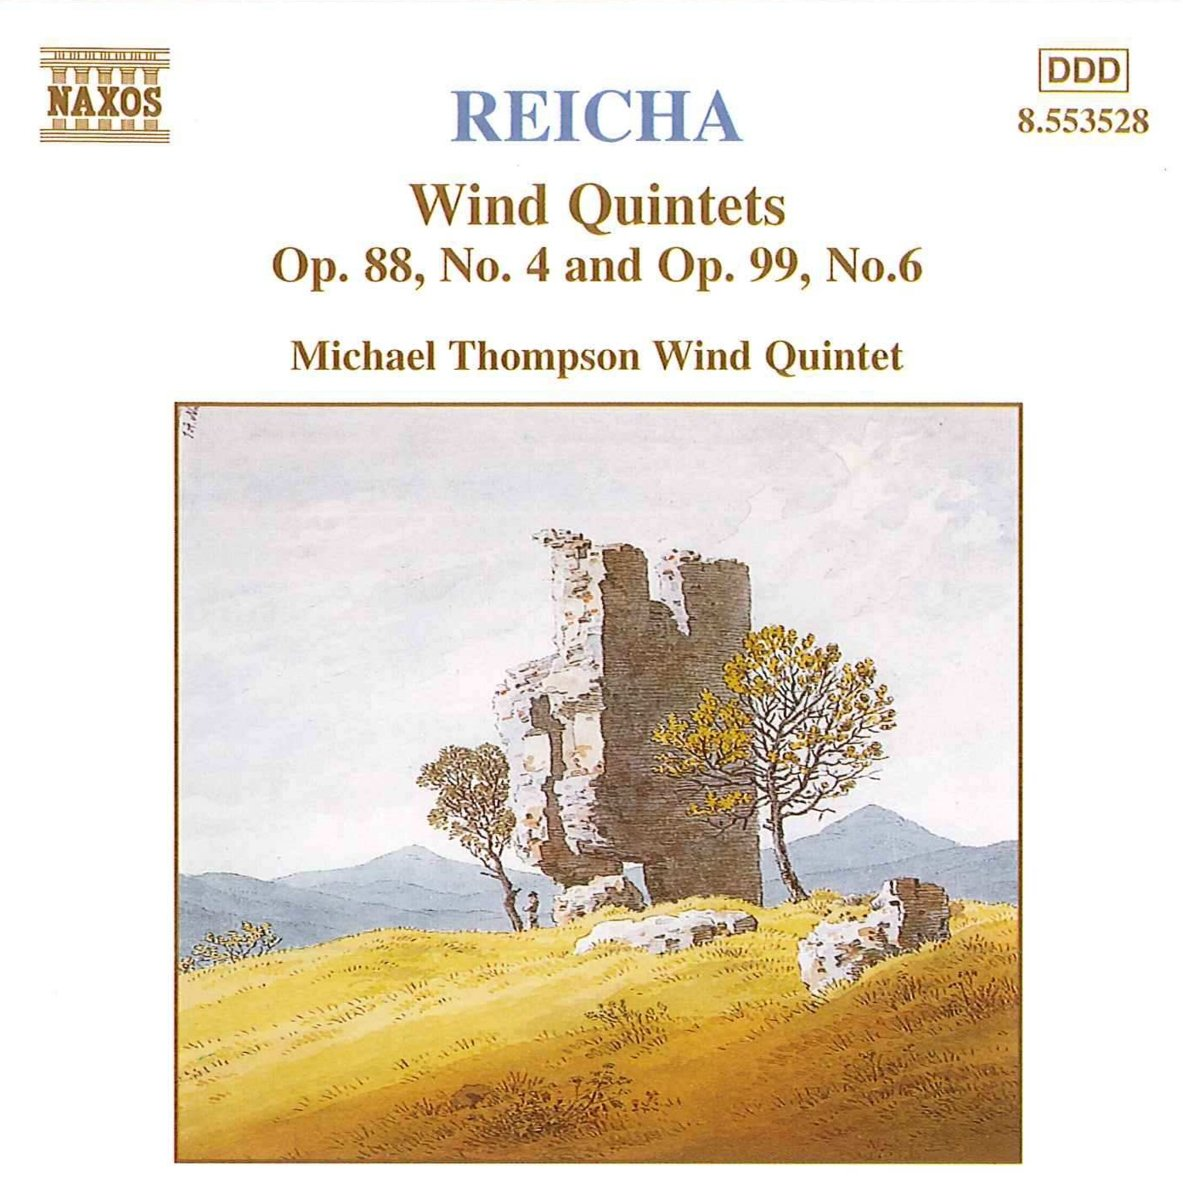 El Paso Mall REICHA: Wind Quintets Op. 88 No. 4 99 6 Ranking TOP10 and